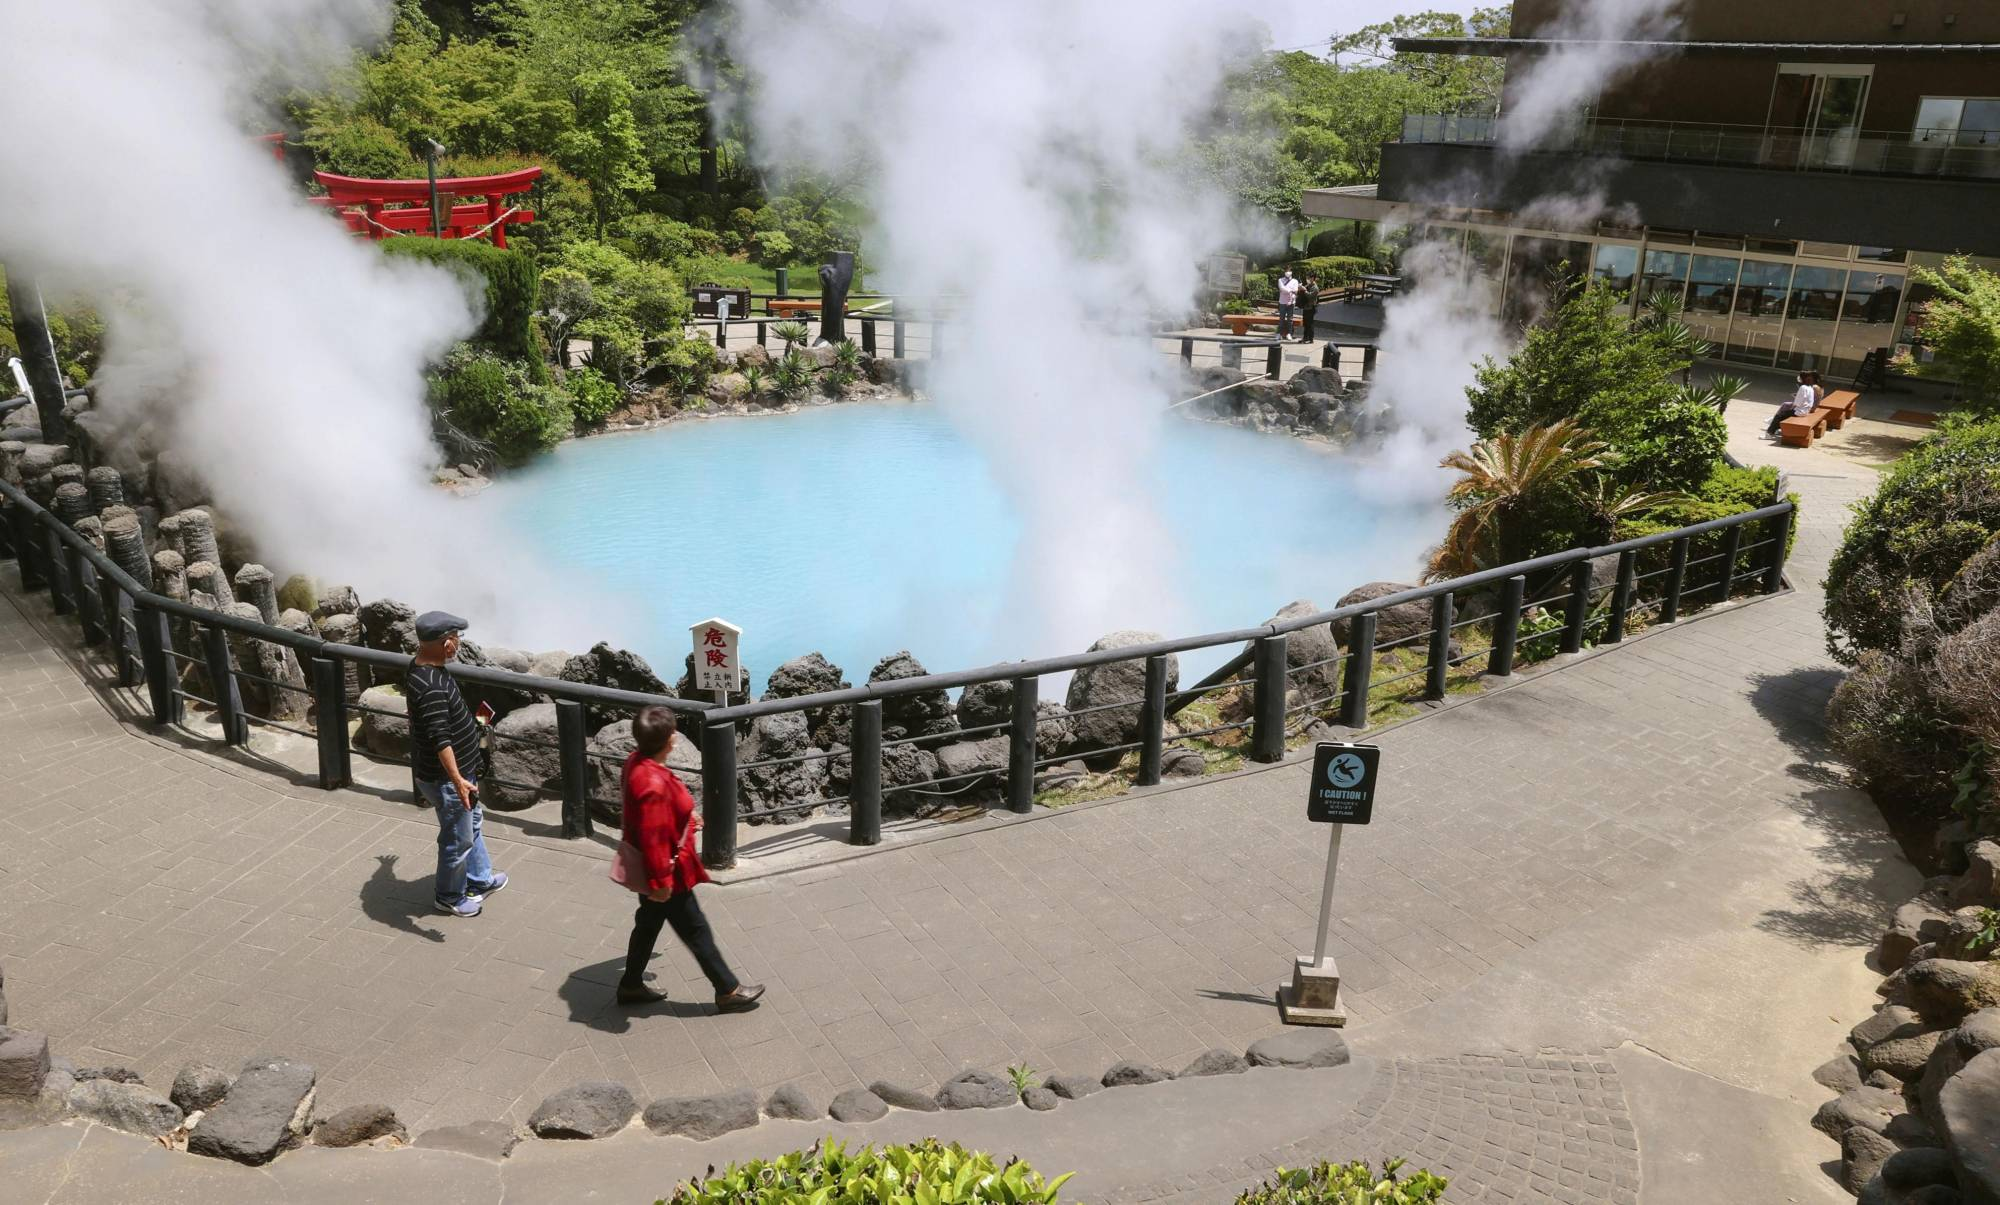 Tourists visit a hot spring in Beppu, Oita Prefecture, in May. | KYODO